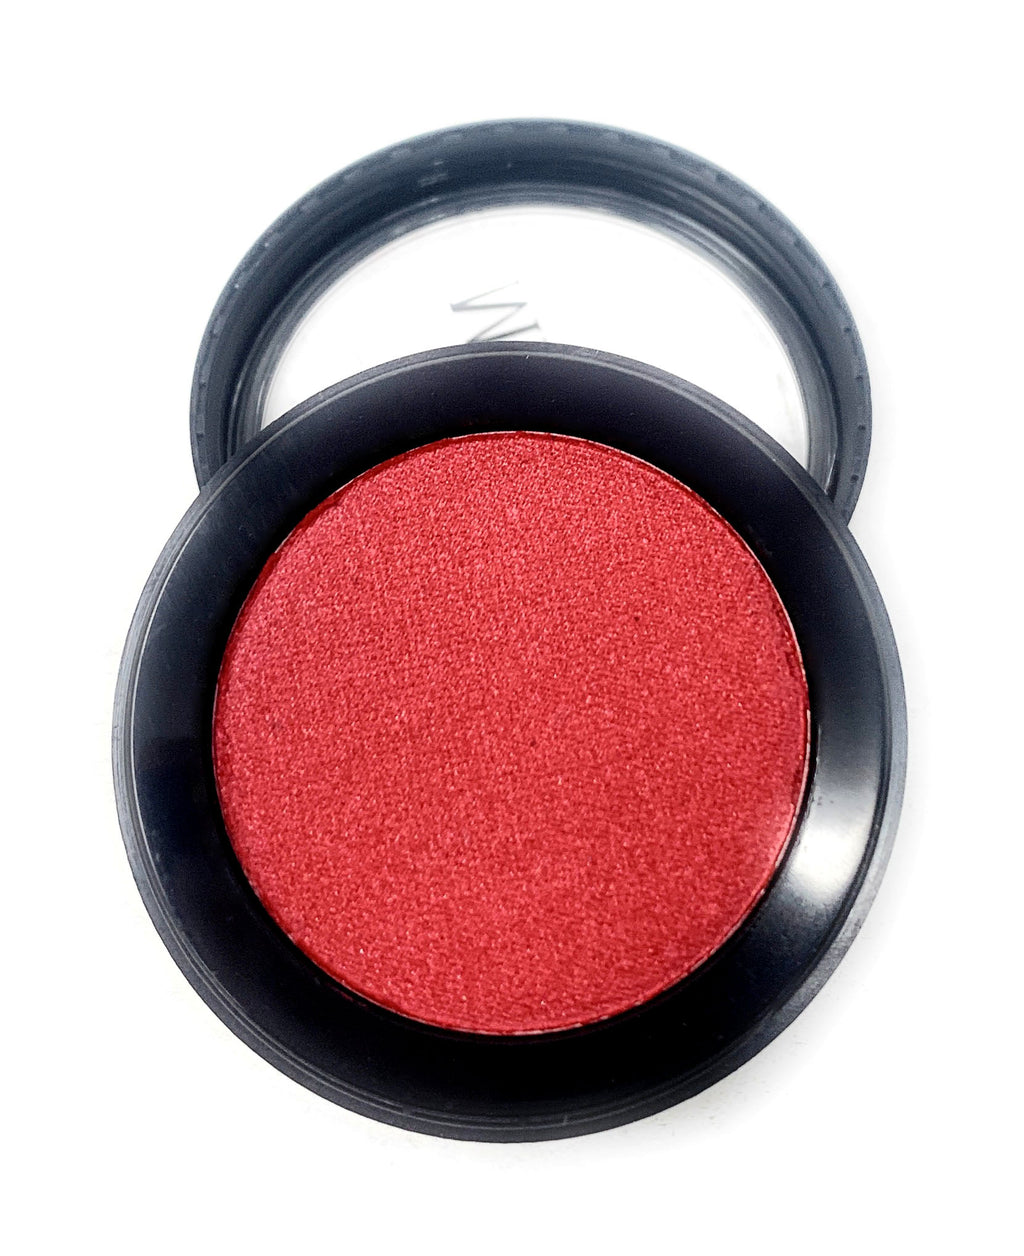 Single Pressed Pink Foiled Eyeshadow In the Shade Poppie Compact Smooth Pigmented Eyeshadow Colour